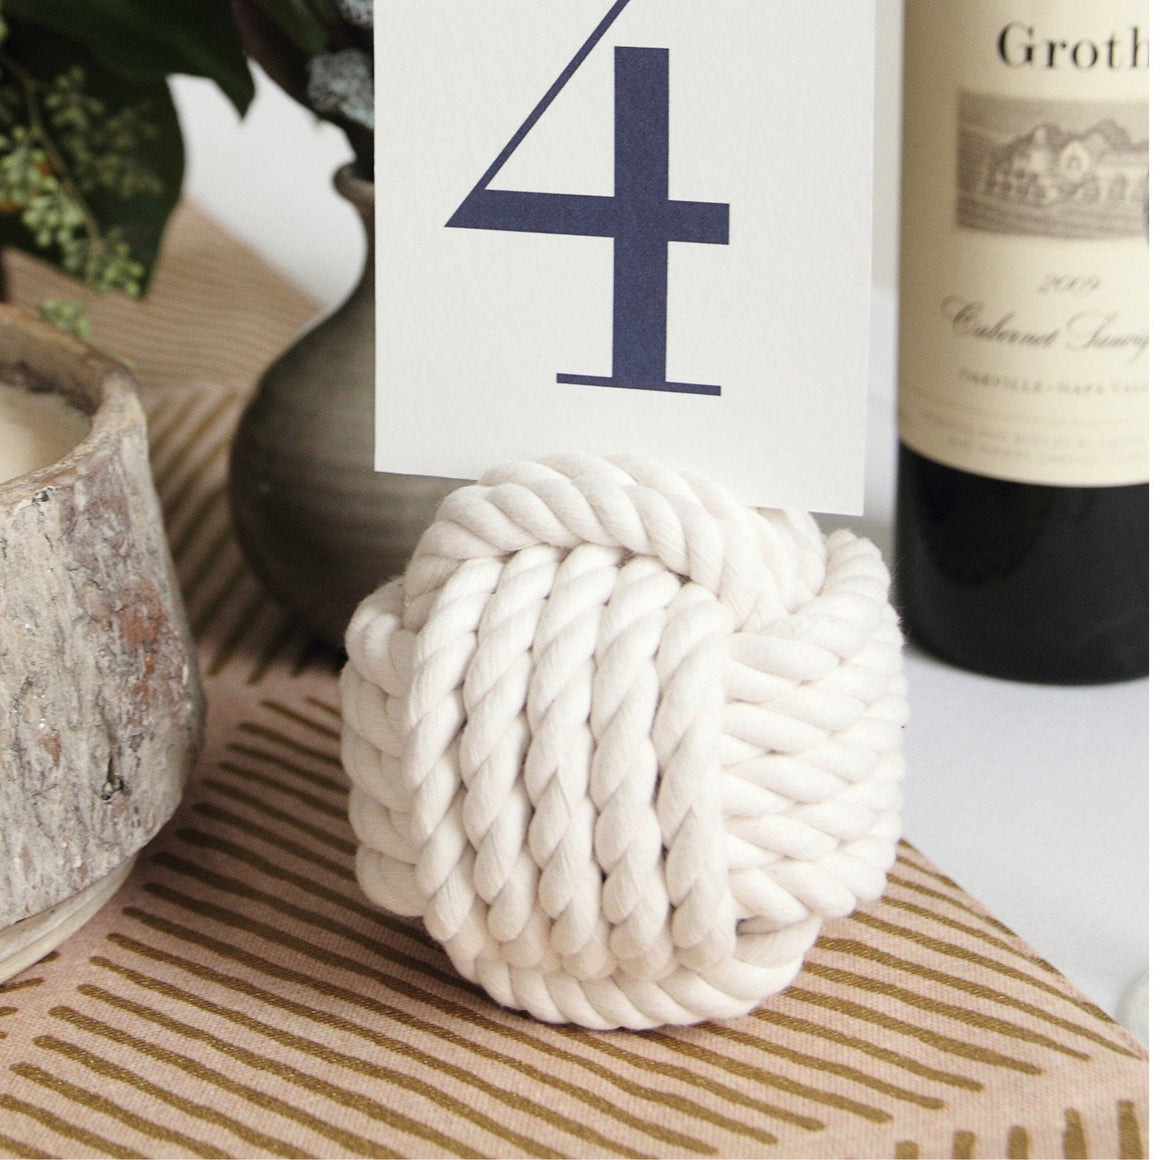 "Nautical Knot Card Holder, White, 4.5"", 5-Pass - Mystic Knotwork nautical knot"